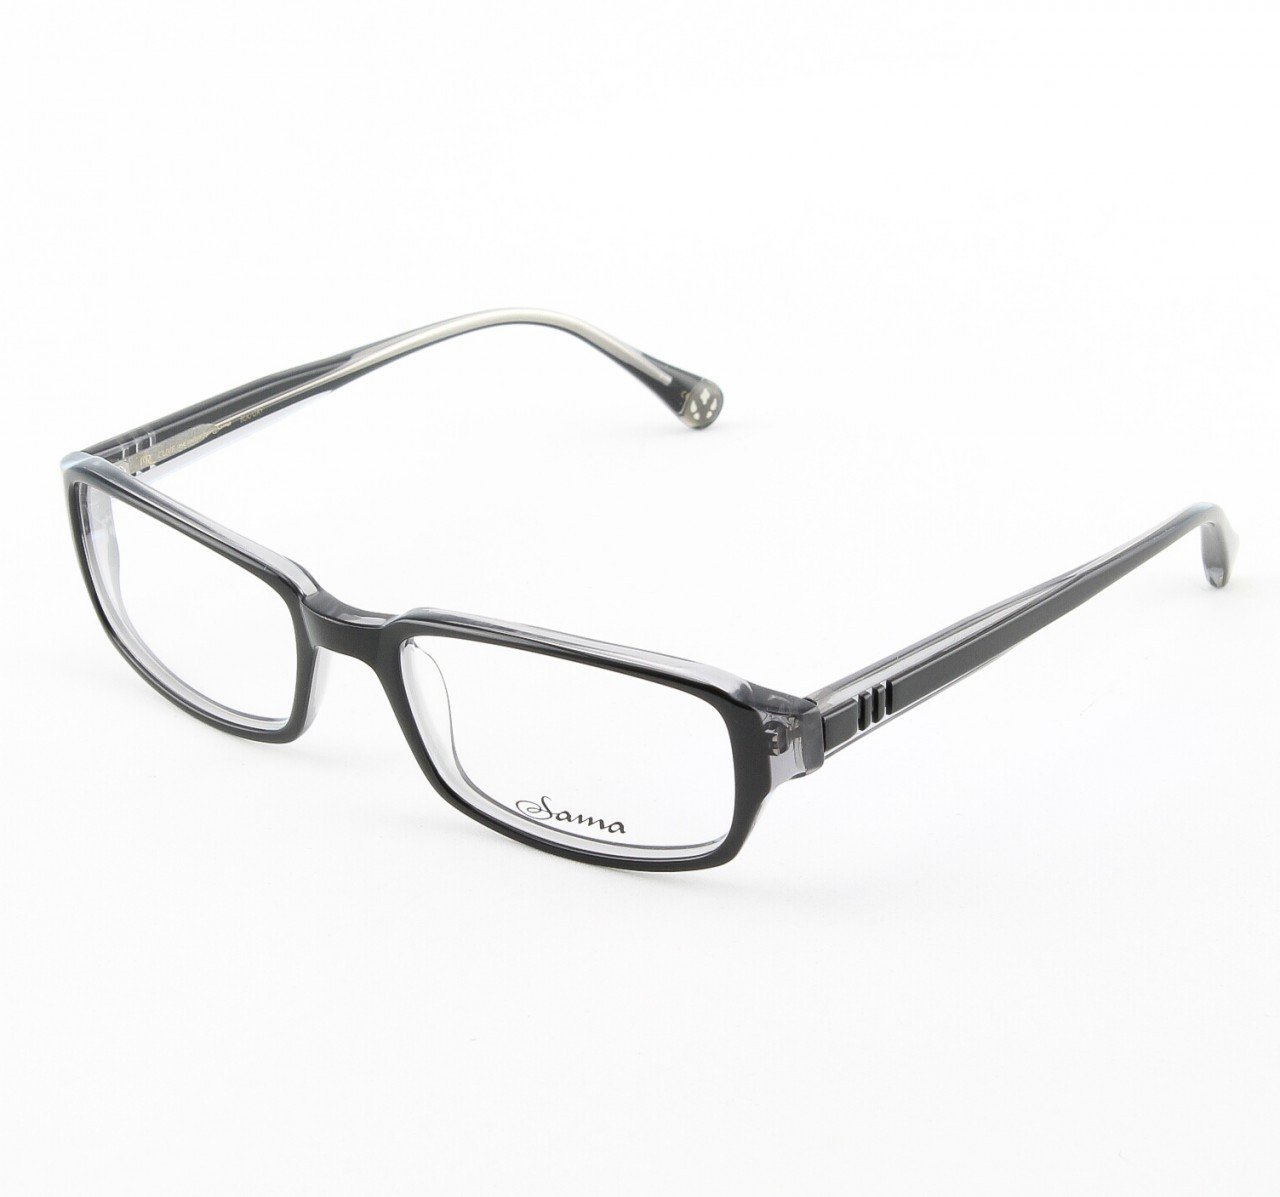 Loree Rodkin Clive Eyeglasses by Sama Col. Black and Gray with Clear Lenses